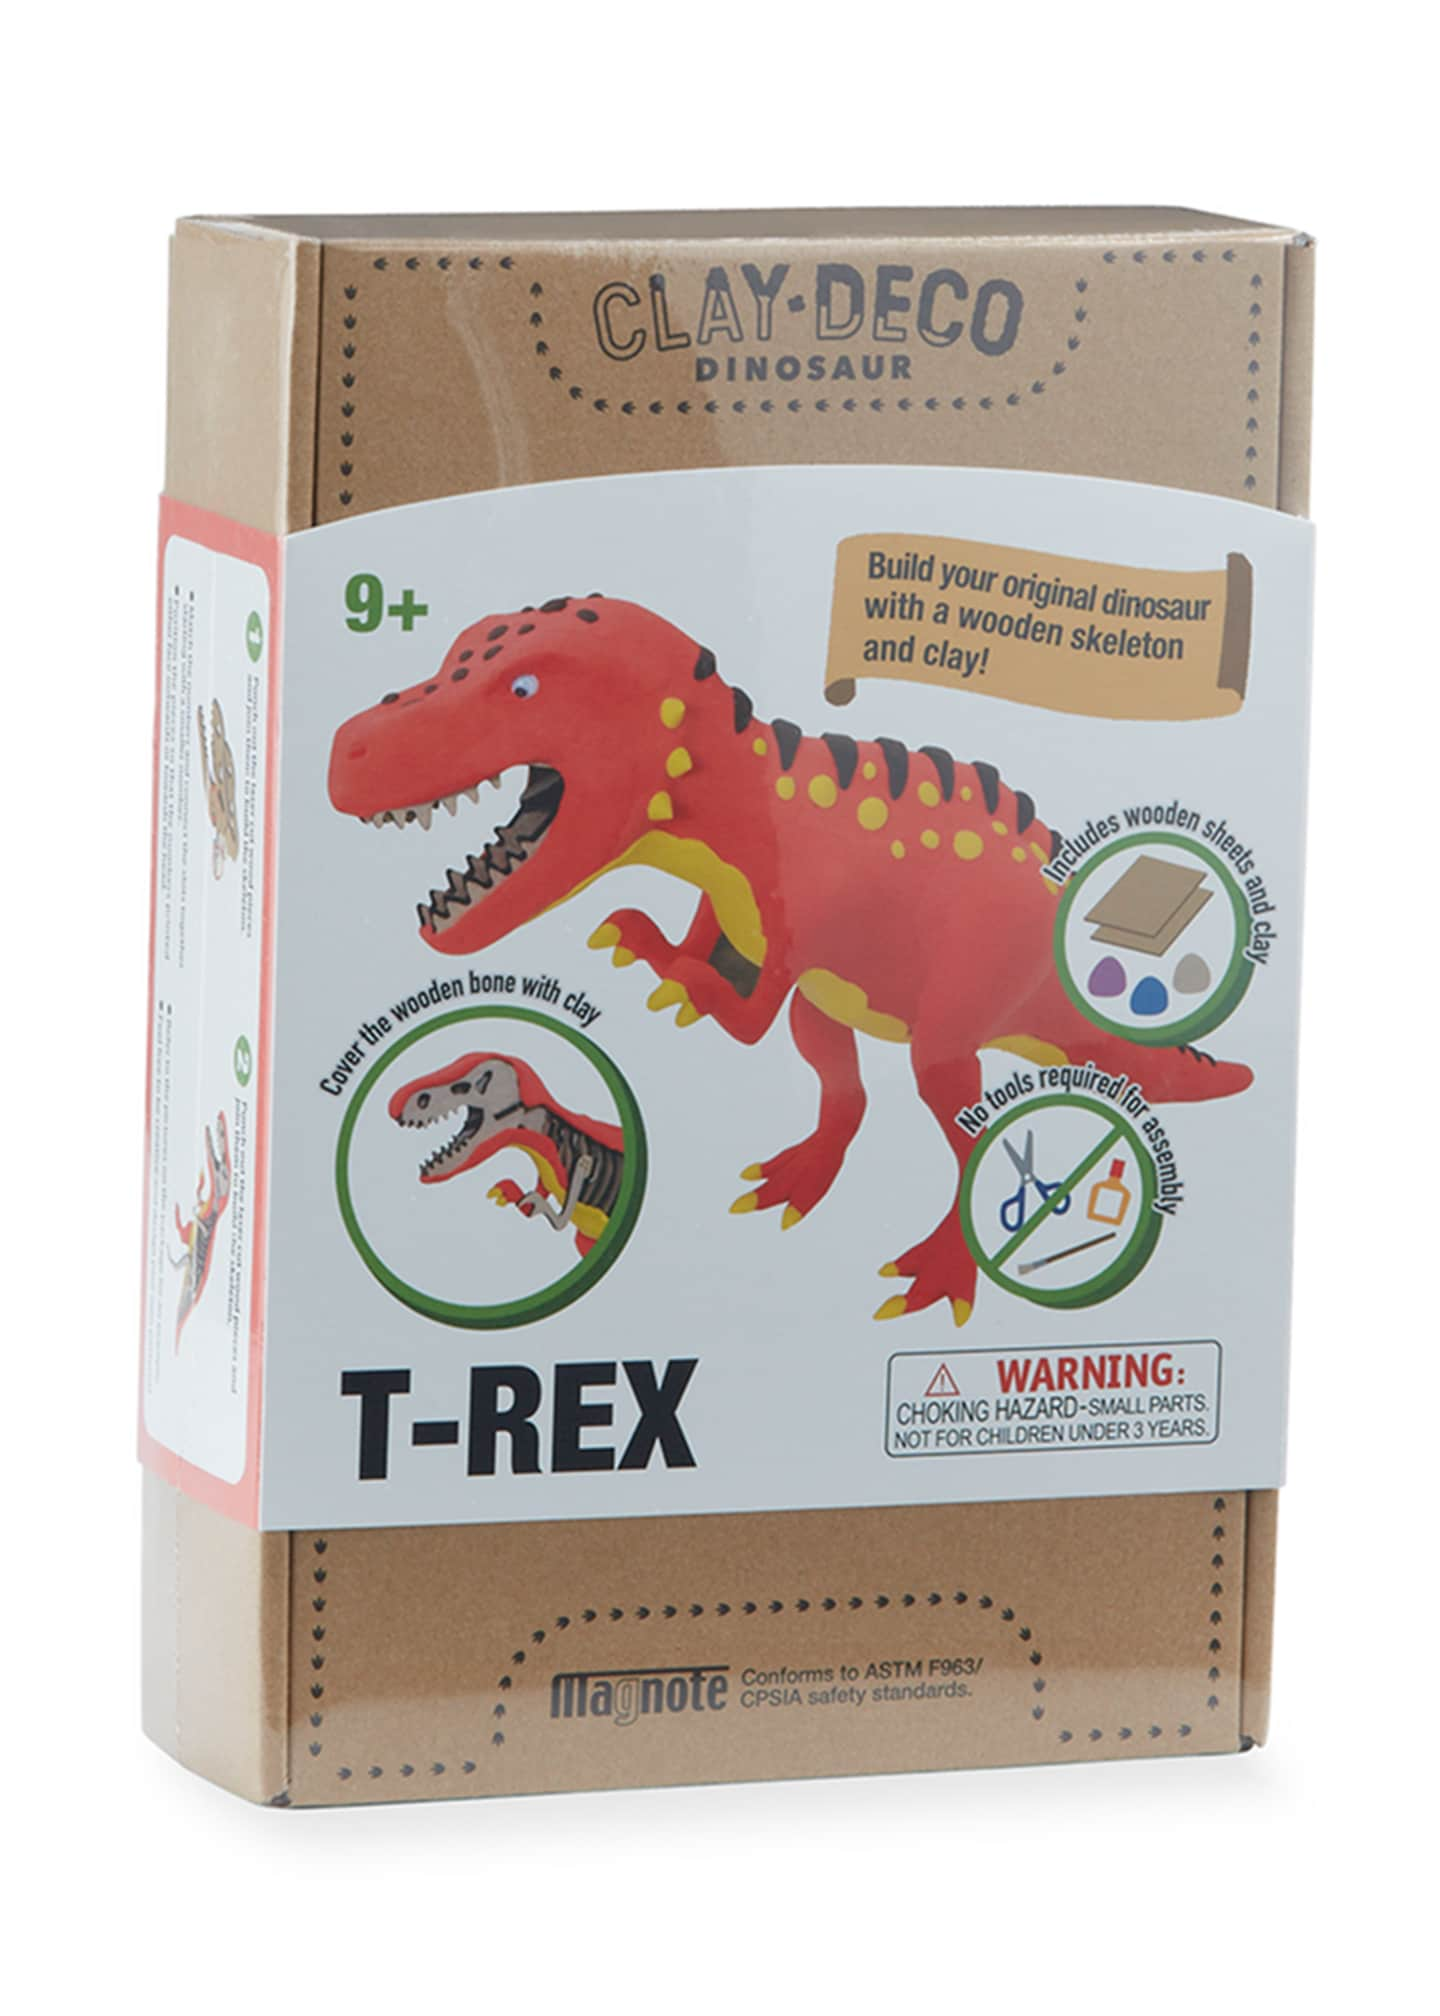 Image 1 of 4: CLAY DECO Dinosaur T-Rex